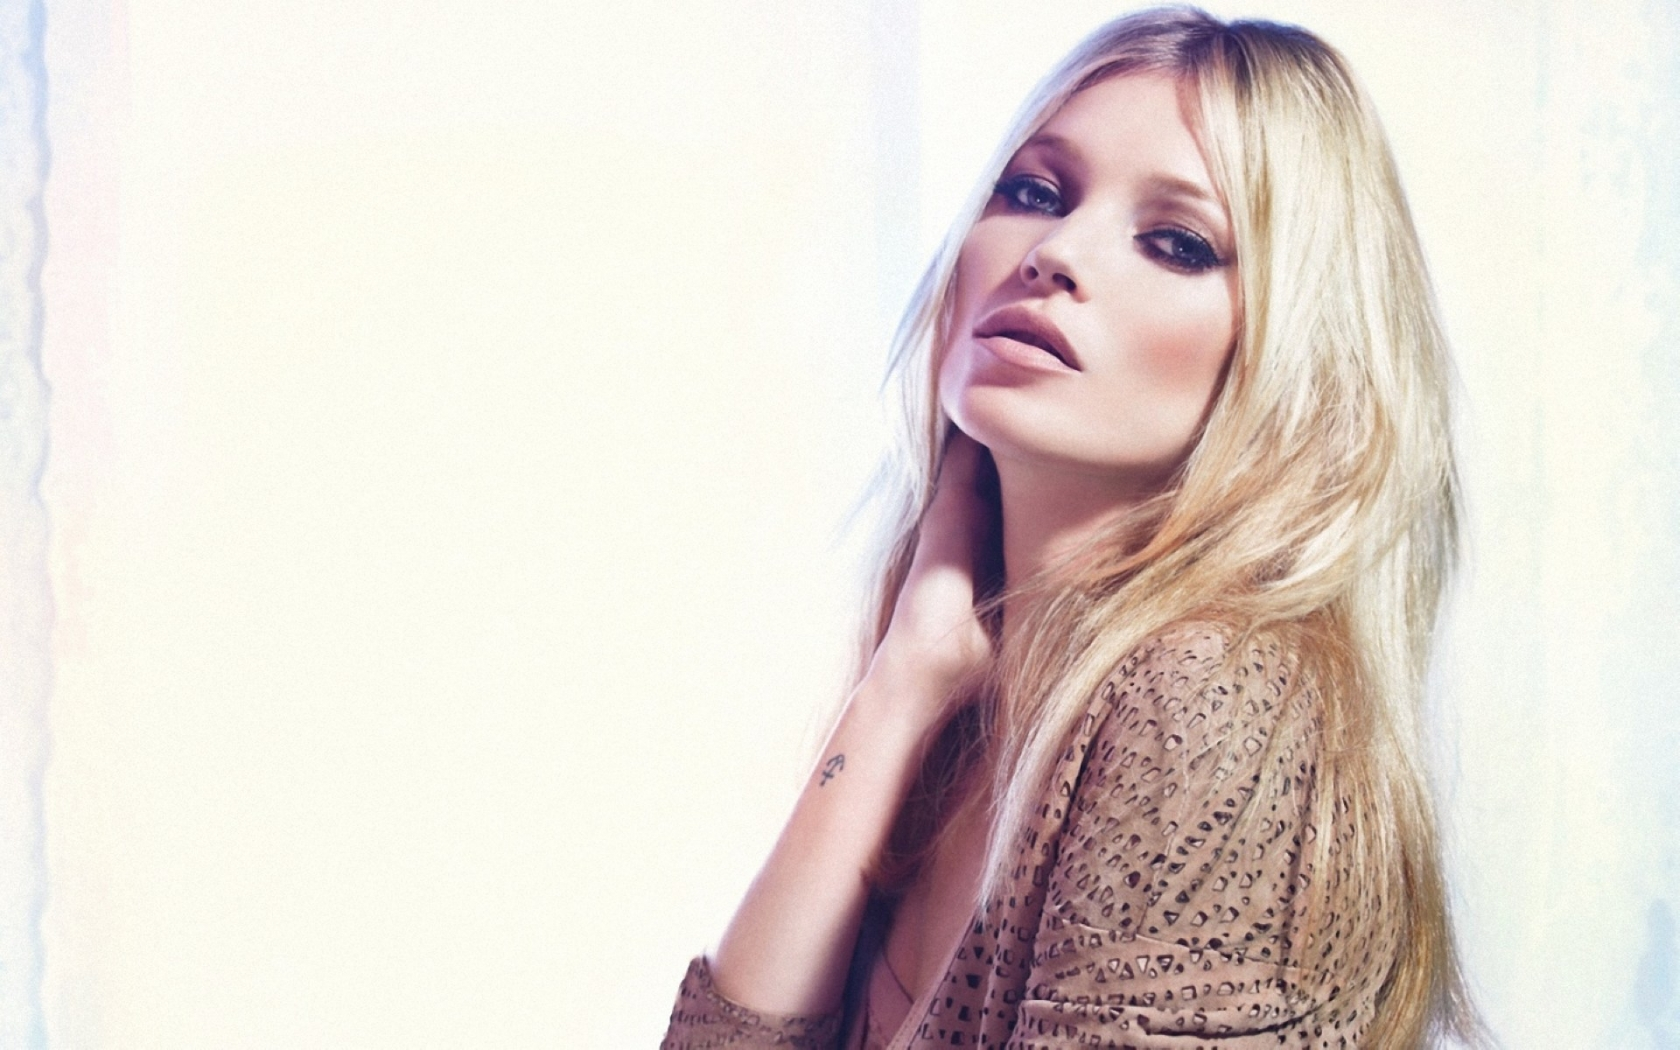 1680x1050 - Kate Moss Wallpapers 25